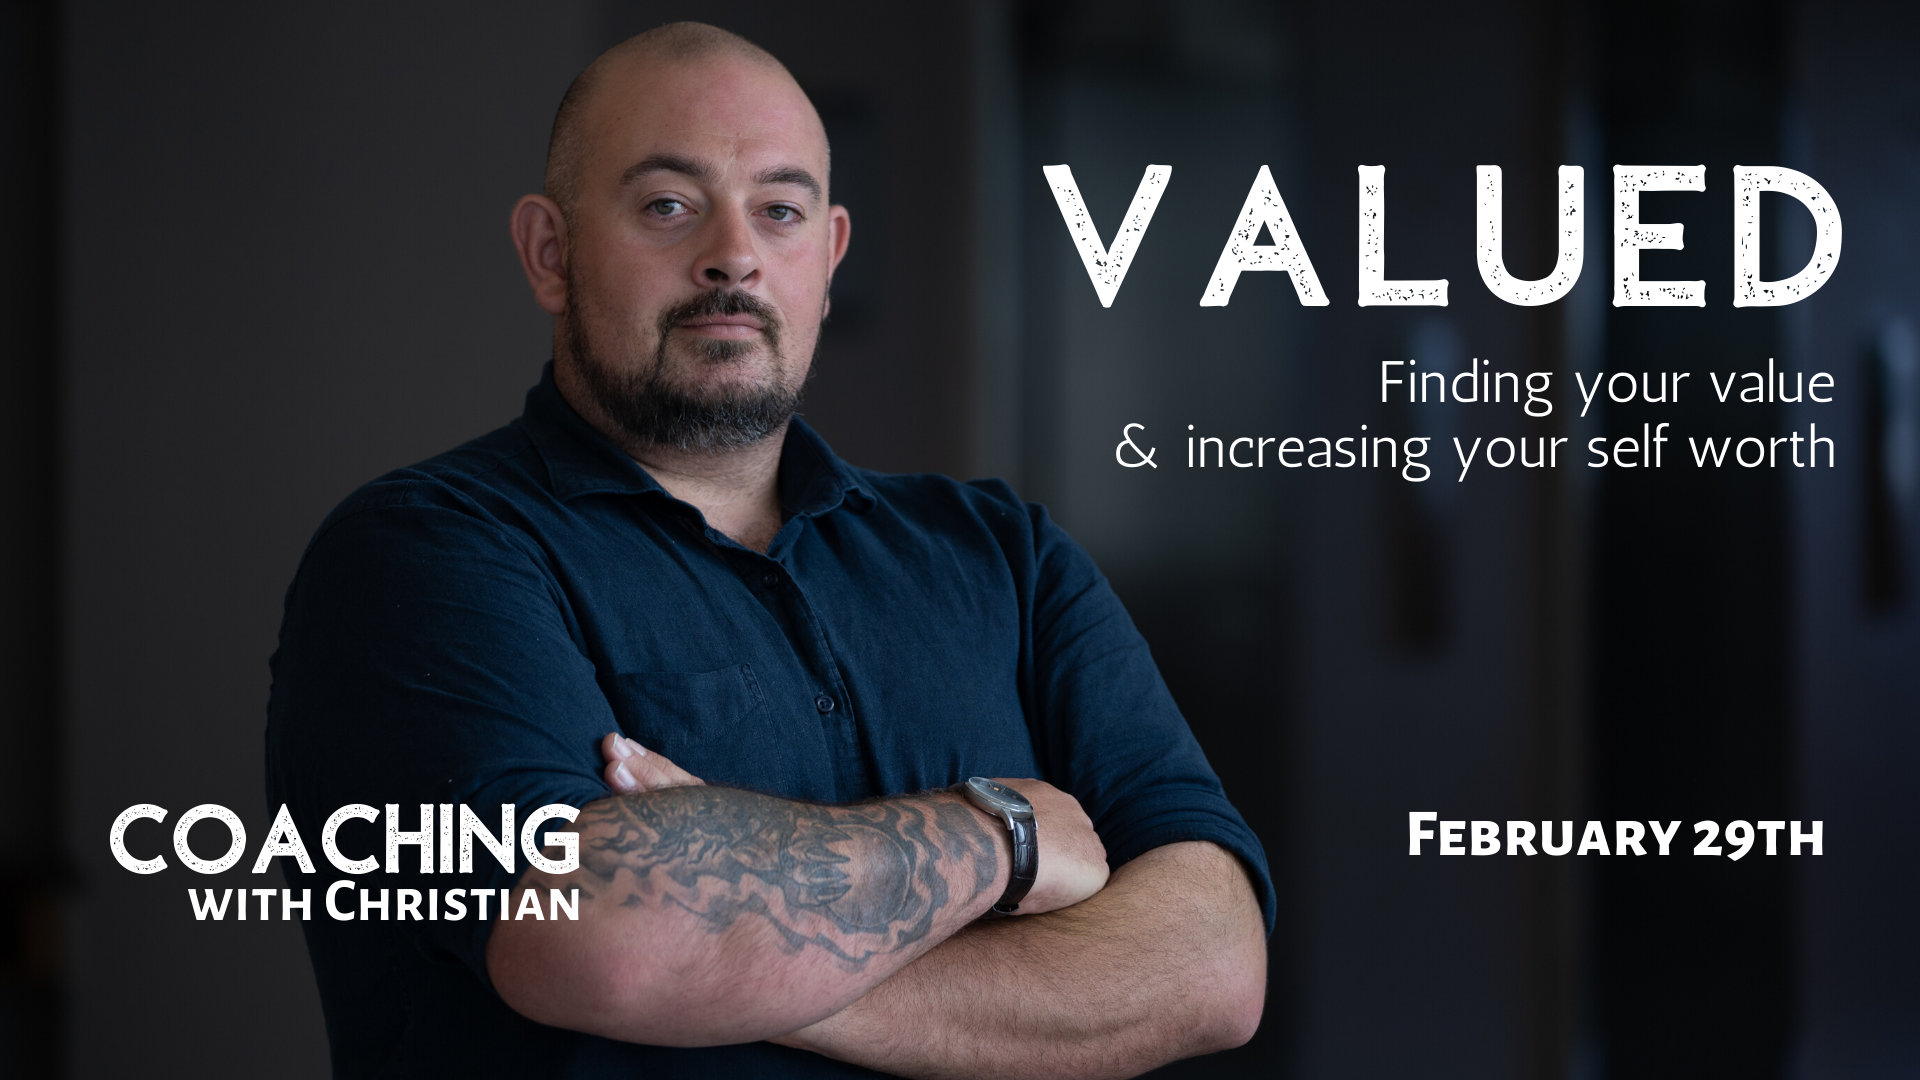 VALUED- Finding your value & increasing your self worth